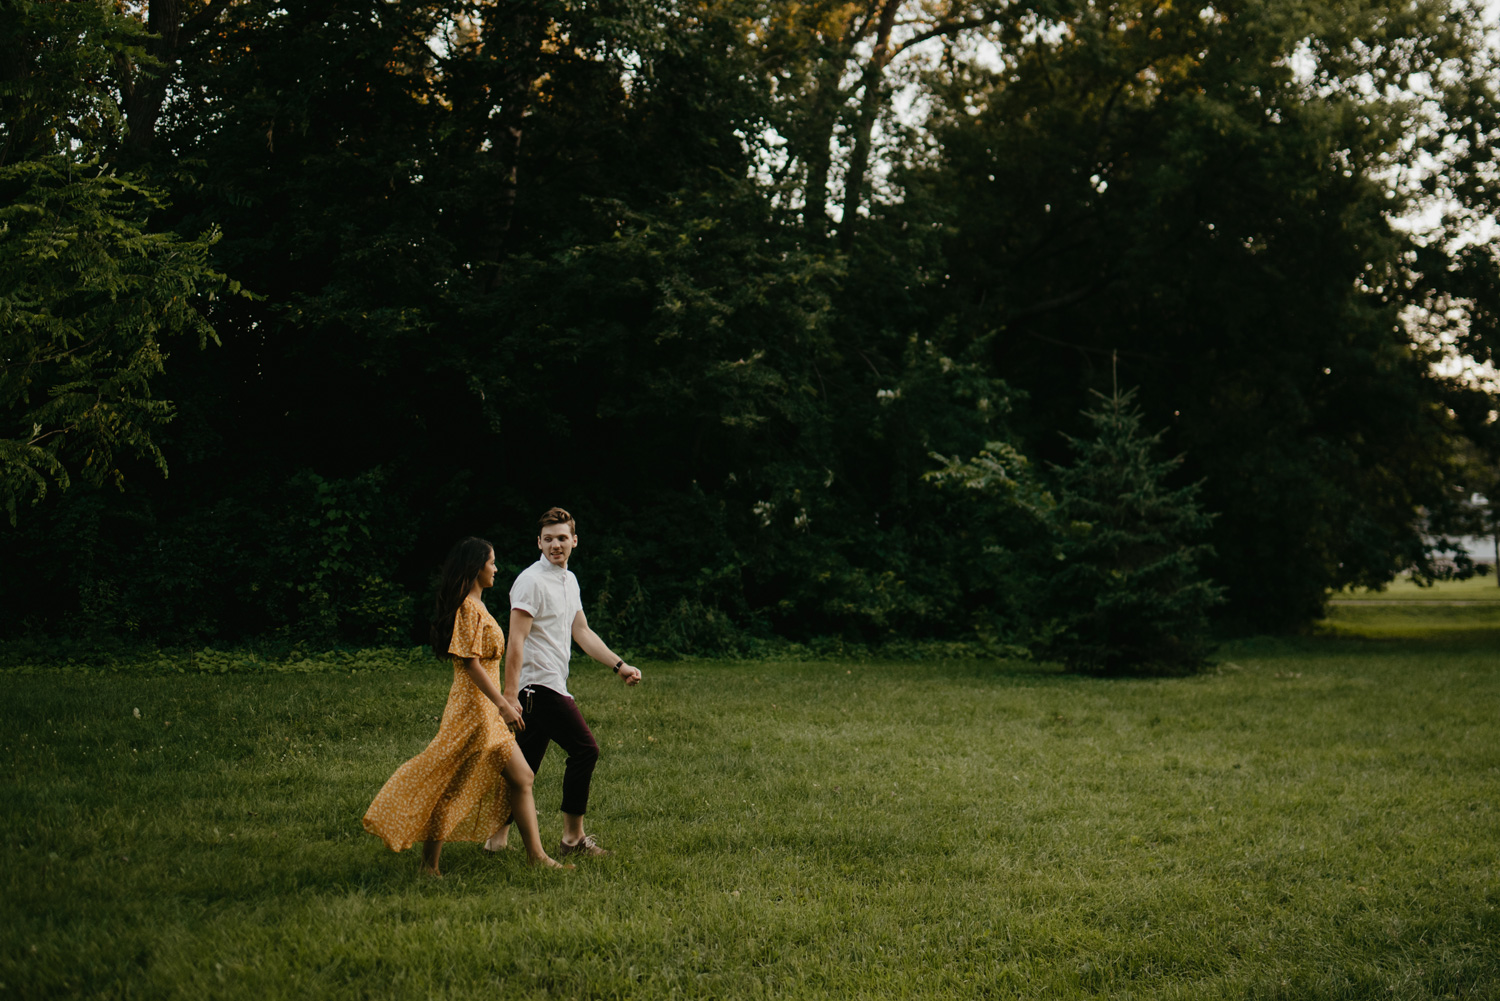 Man and woman walking through field from far away